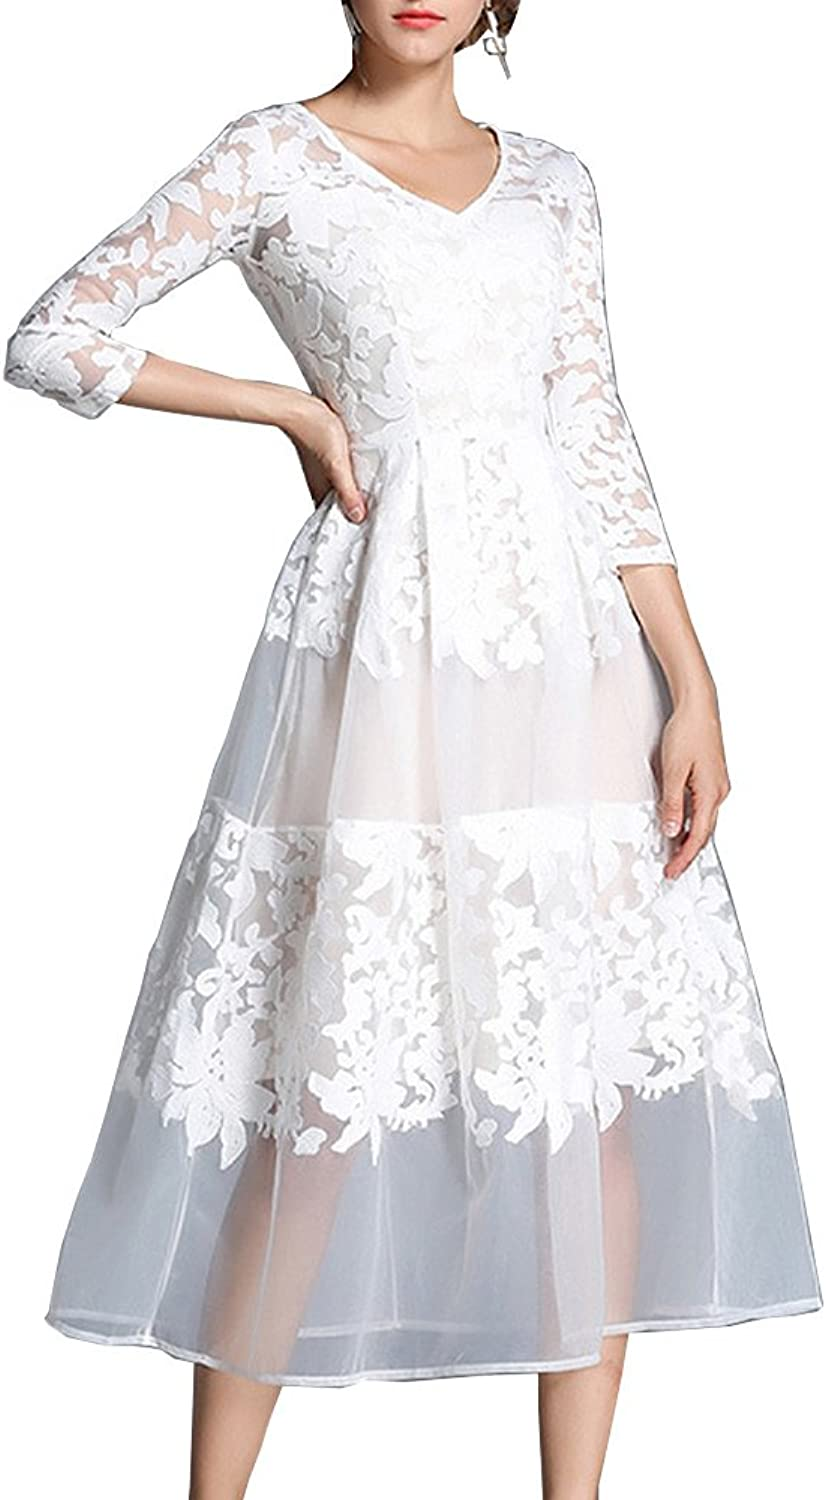 Dissa YL98609 Women Solid 3 4 Sleeve Midi Lace Hollow ALine Evening Party Dress